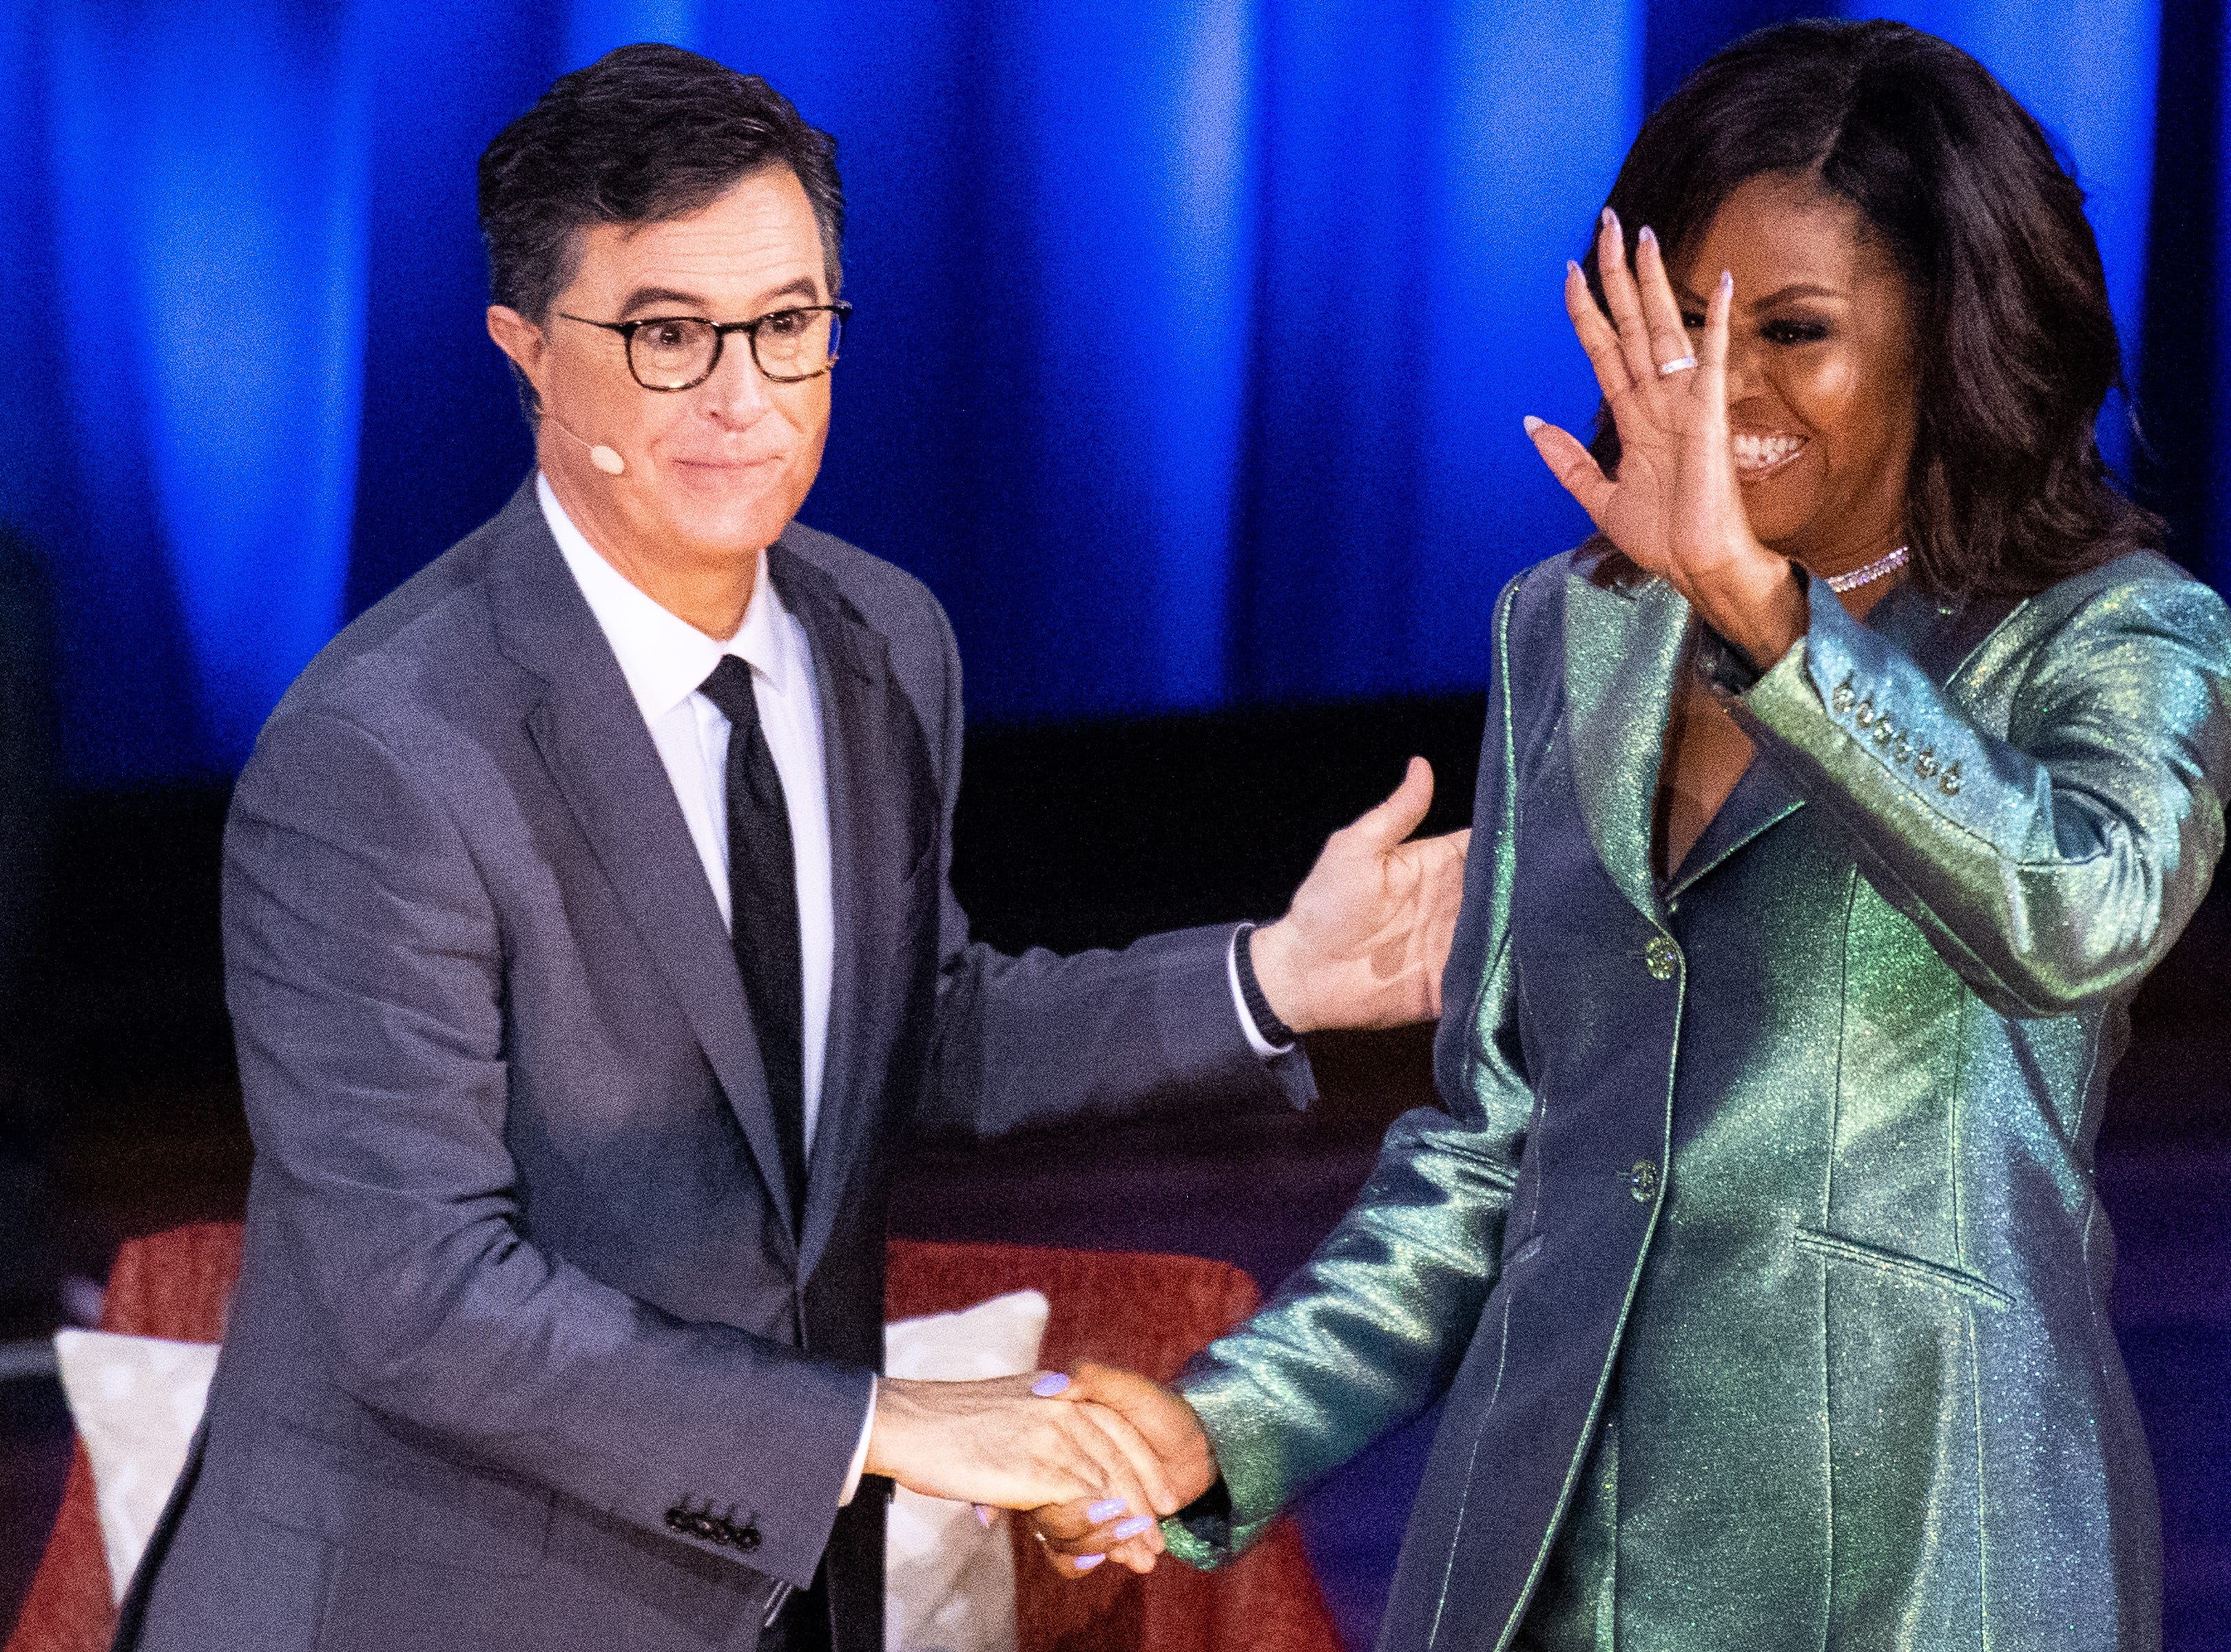 Michelle Obama is greeted by Stephen Colbert during her Becoming: An Intimate Conversation with Michelle Obama event at Ryman Auditorium Sunday, May 12, 2019, in Nashville, Tenn.